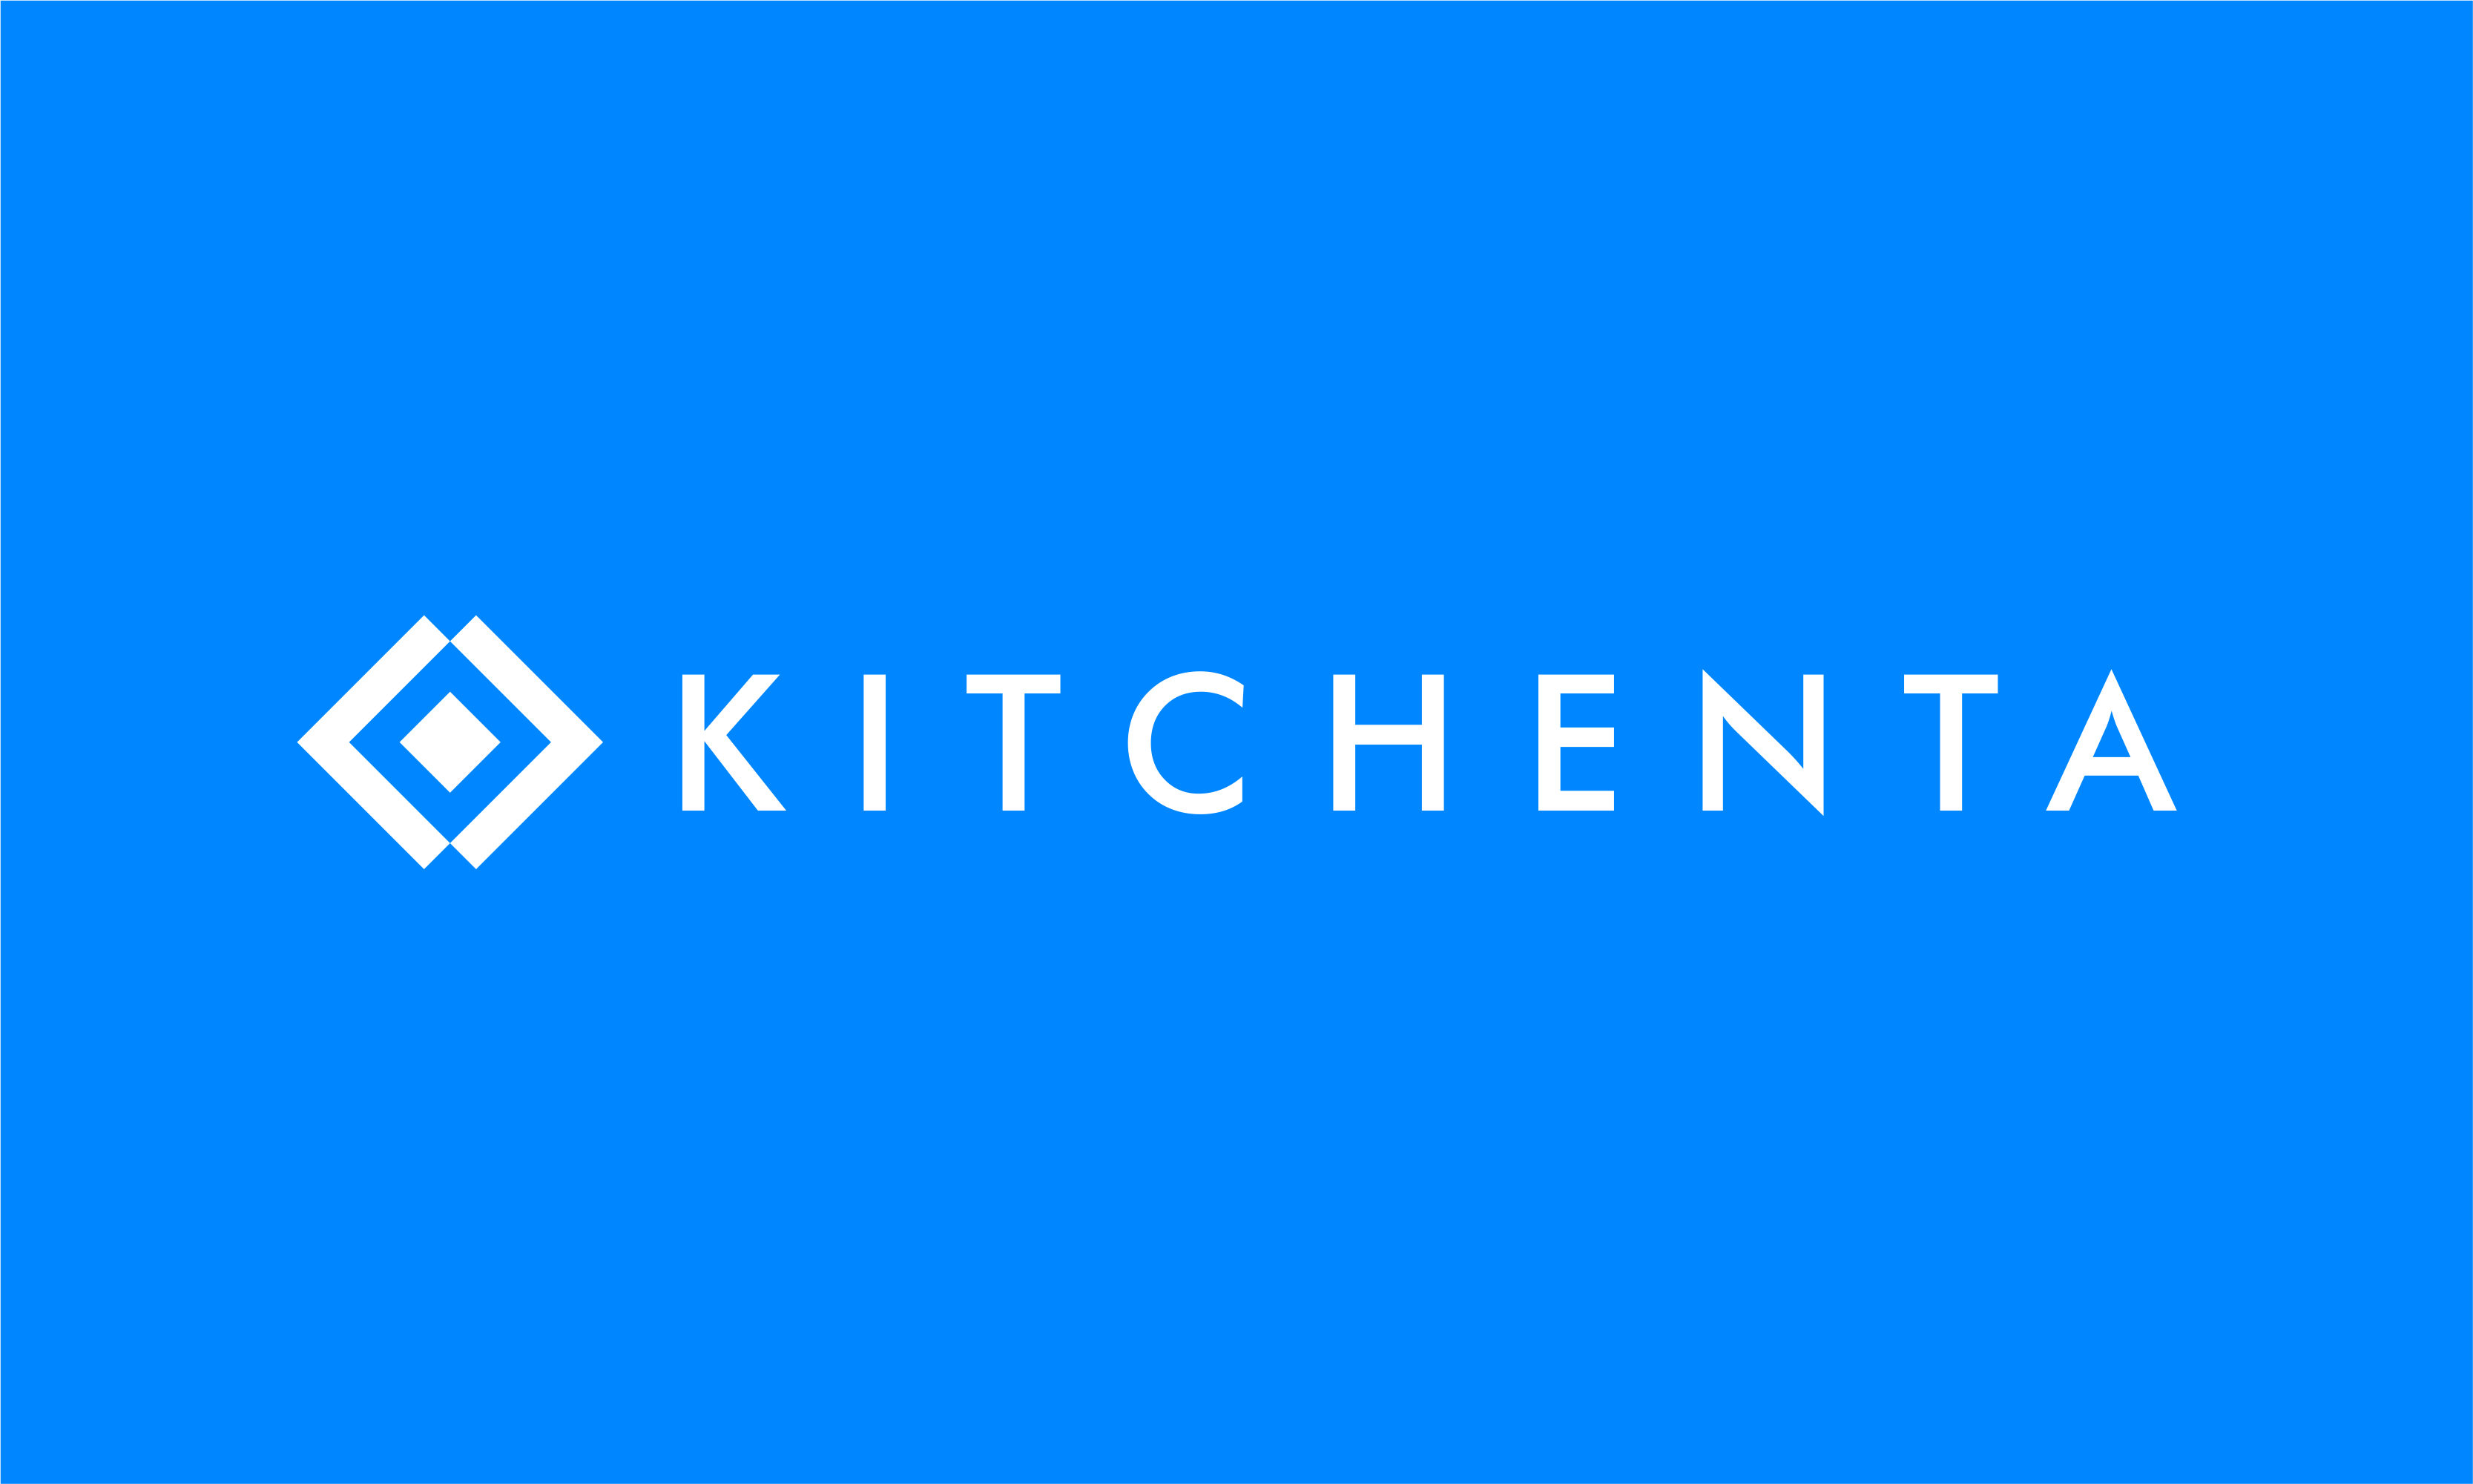 Kitchenta